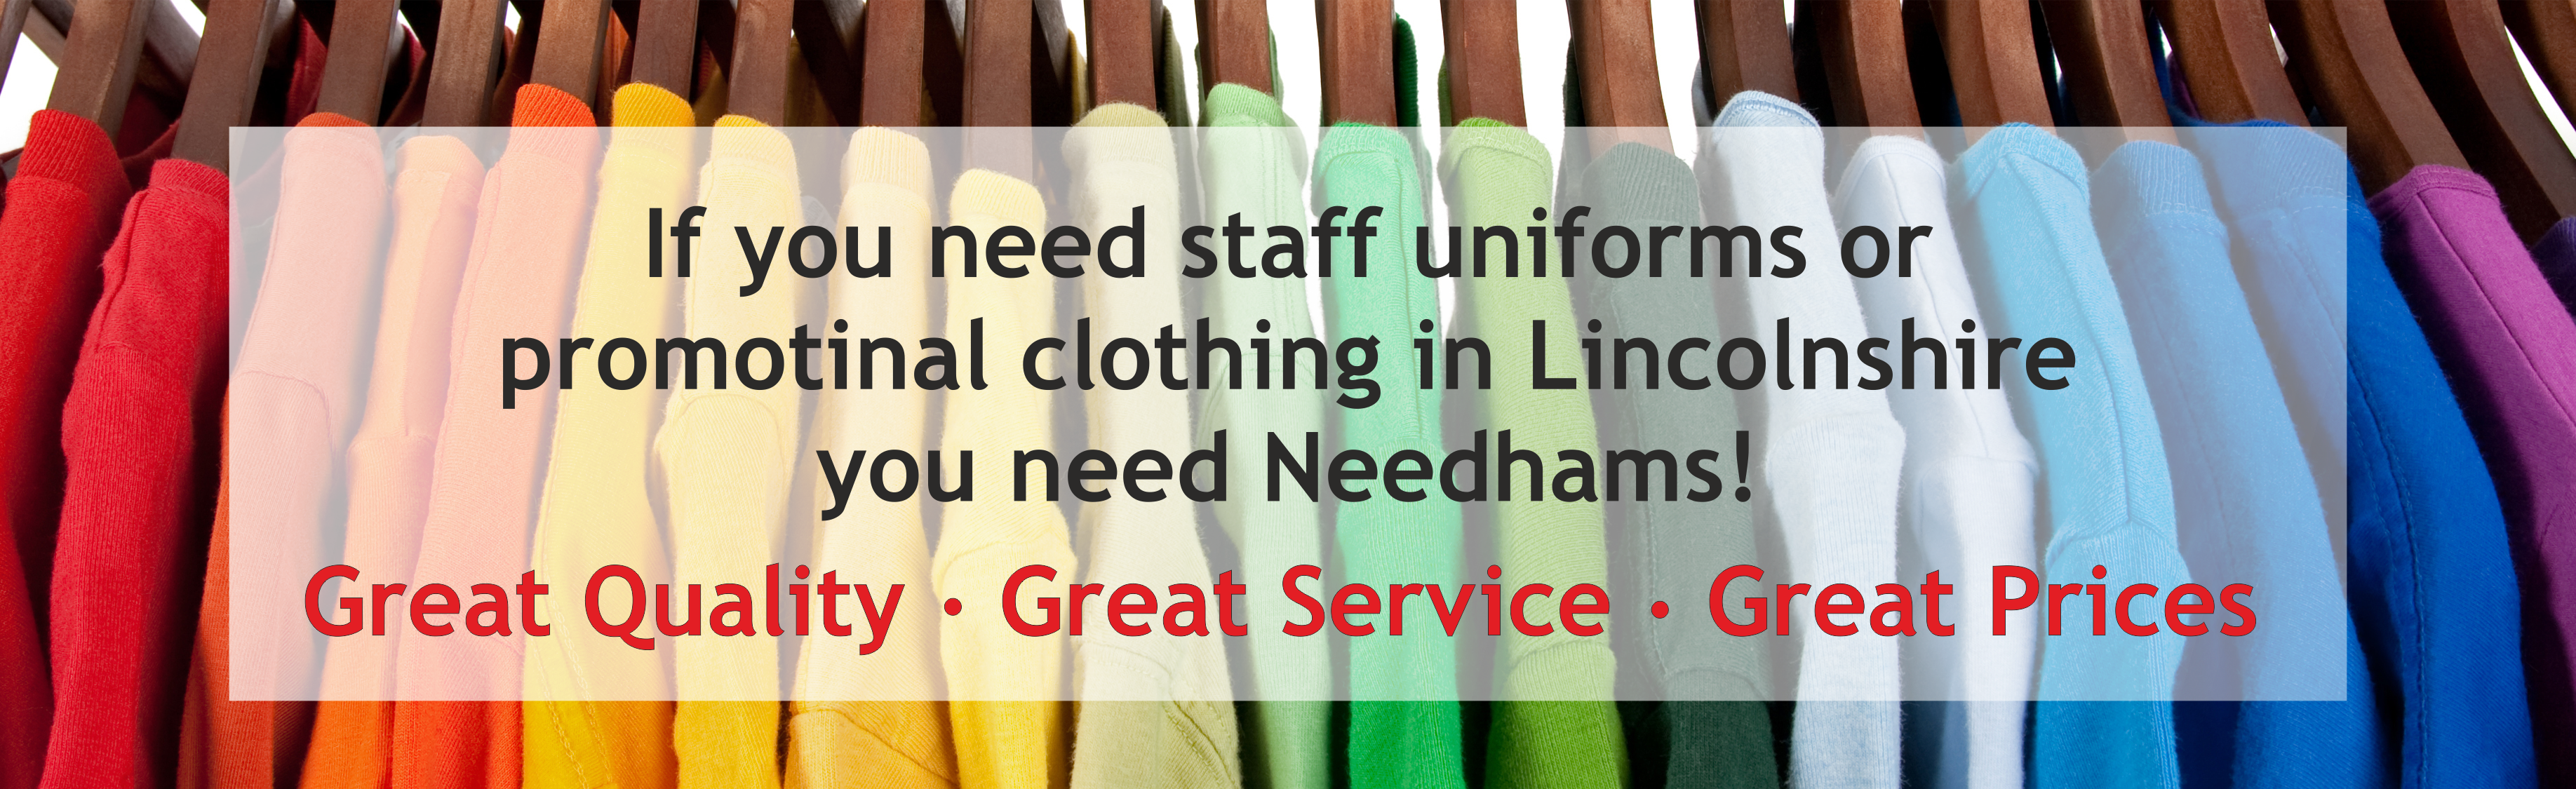 Embroidered workwear and staff uniforms in Lincoln, Lincolnshire